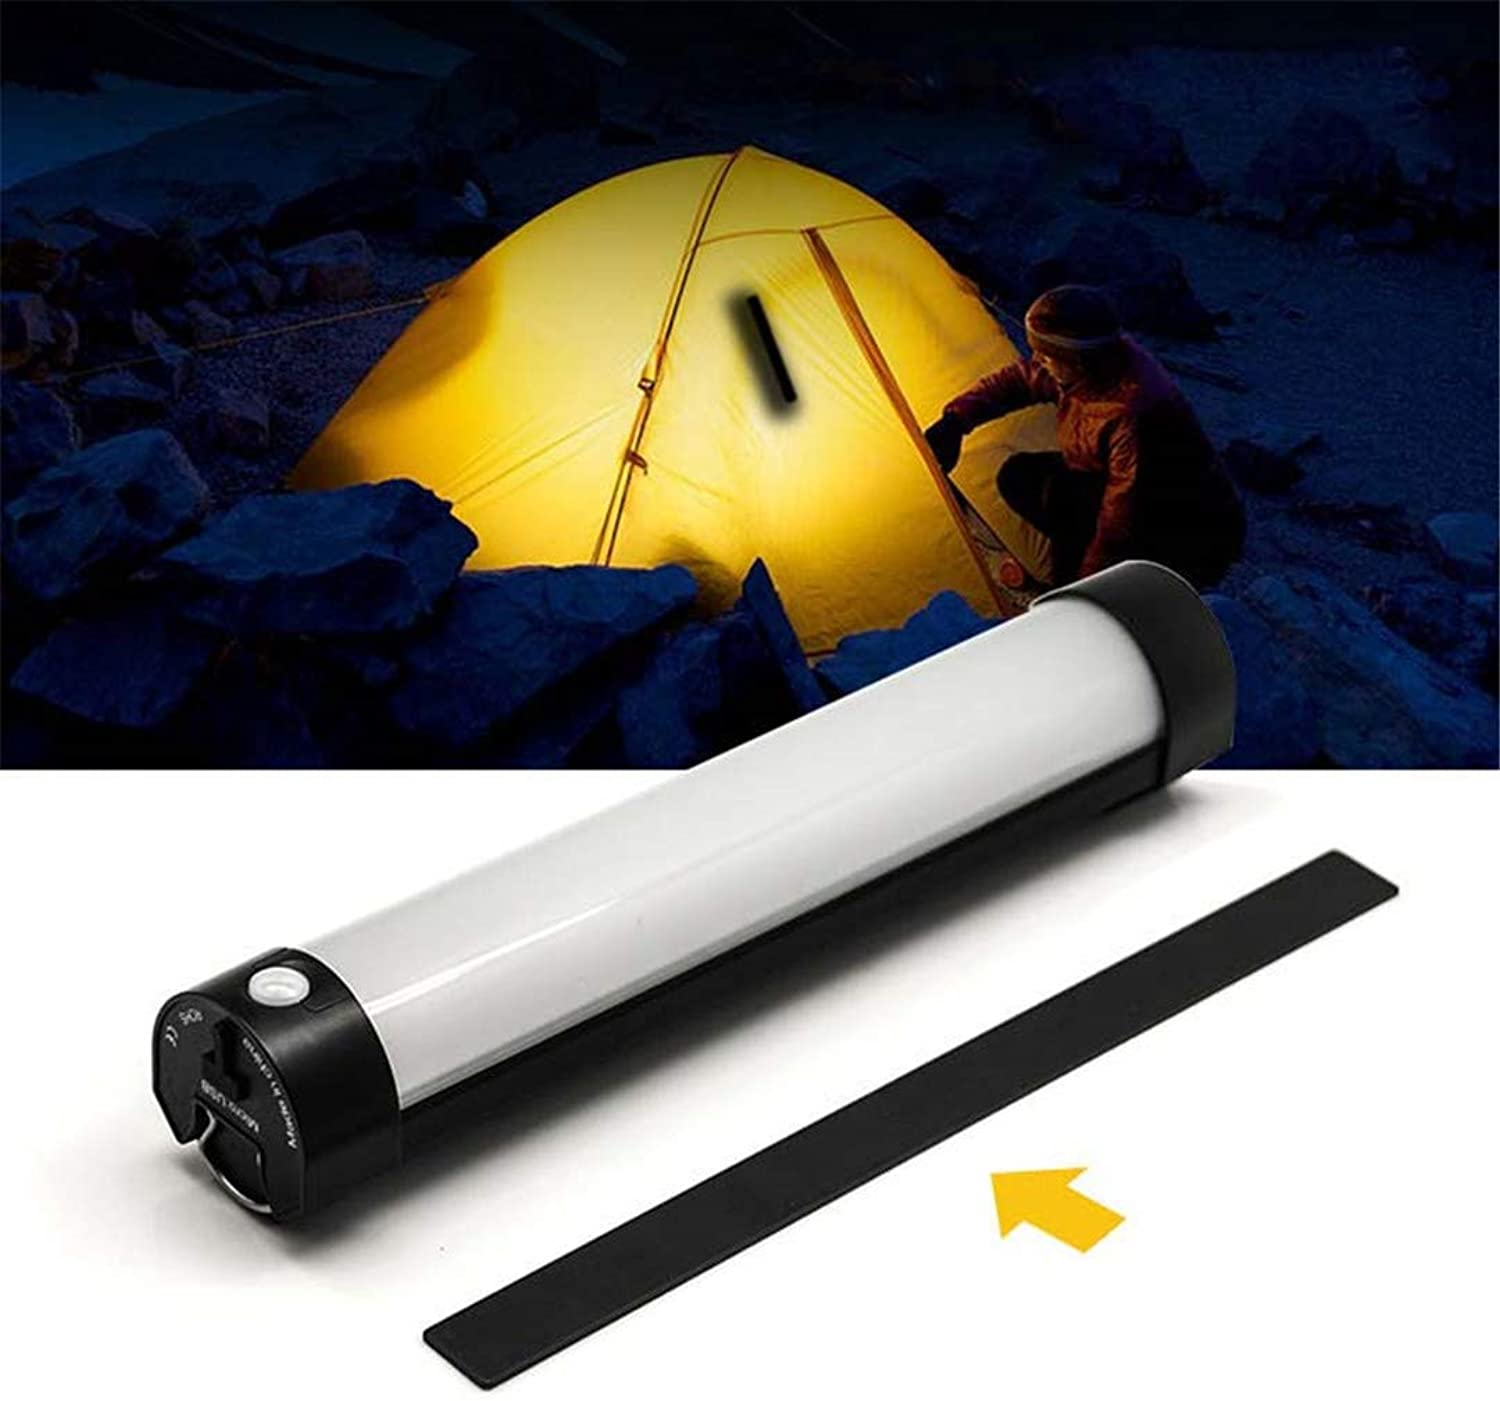 Outdoor Portable Remote Control Camping Light Fishing Lamp Magnetic SOS Emergency Camping Led Light Rechargeable